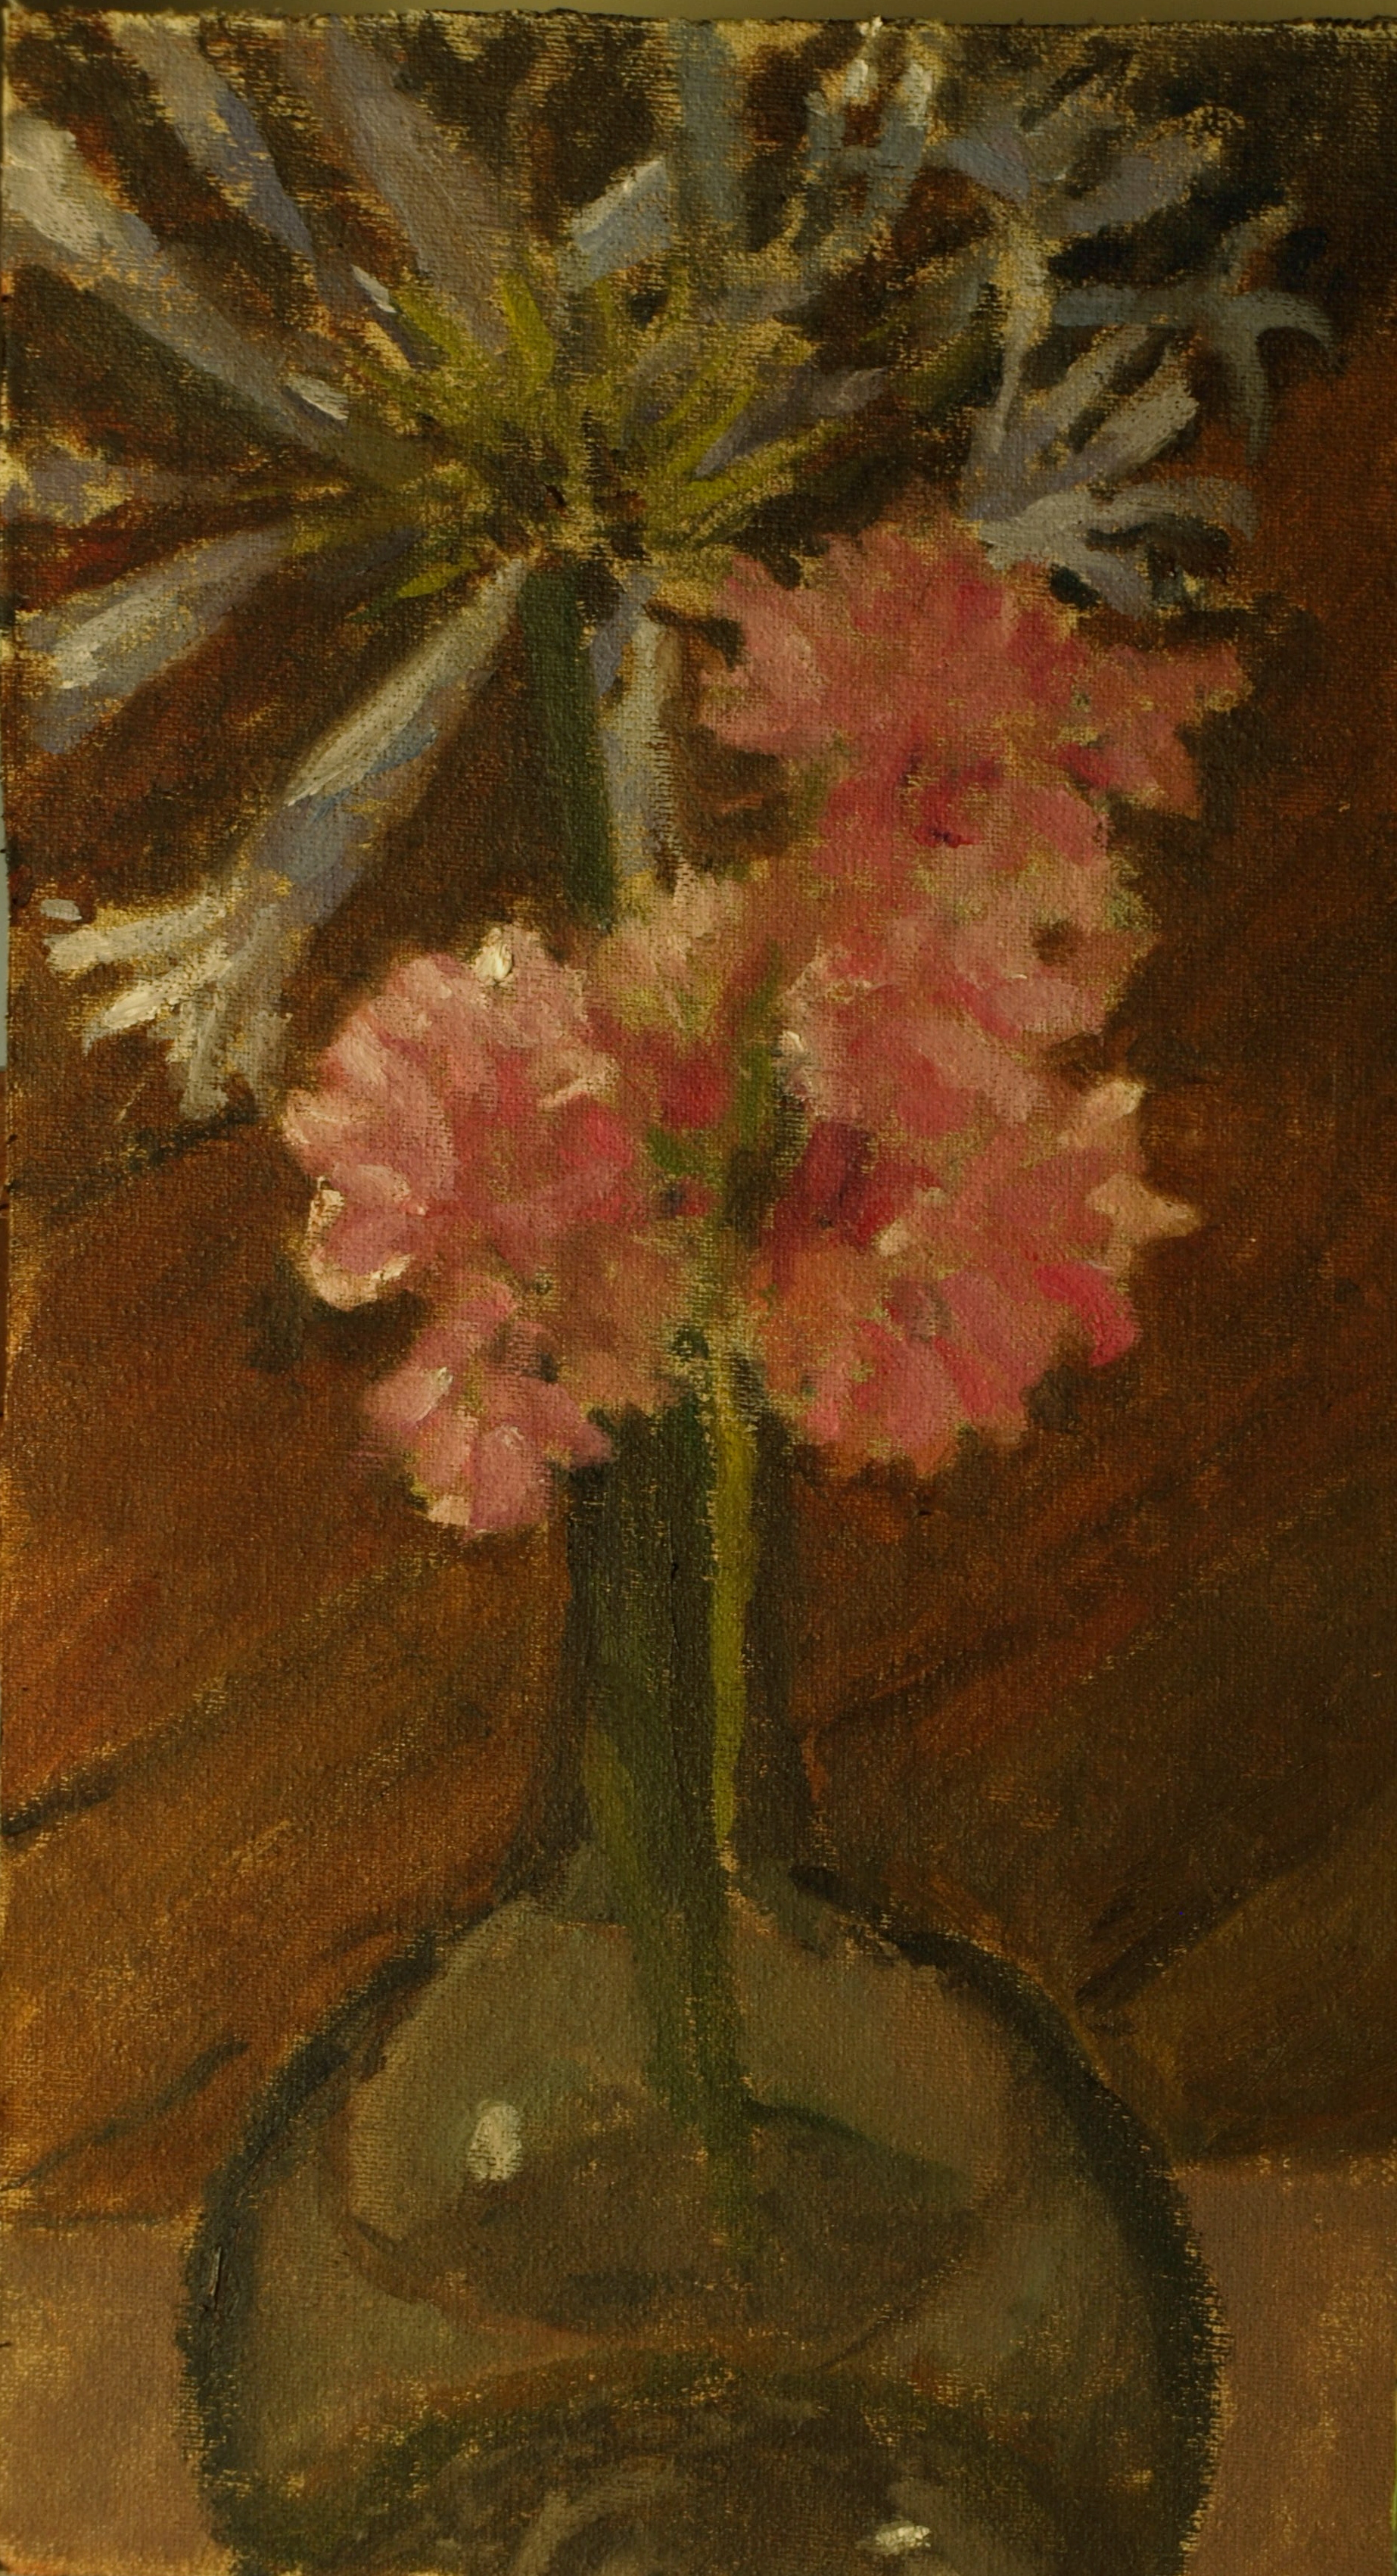 Seven Hearths Still Life, Oil on Canvas on Panel, 14 x 8 Inches, by Richard Stalter, $225